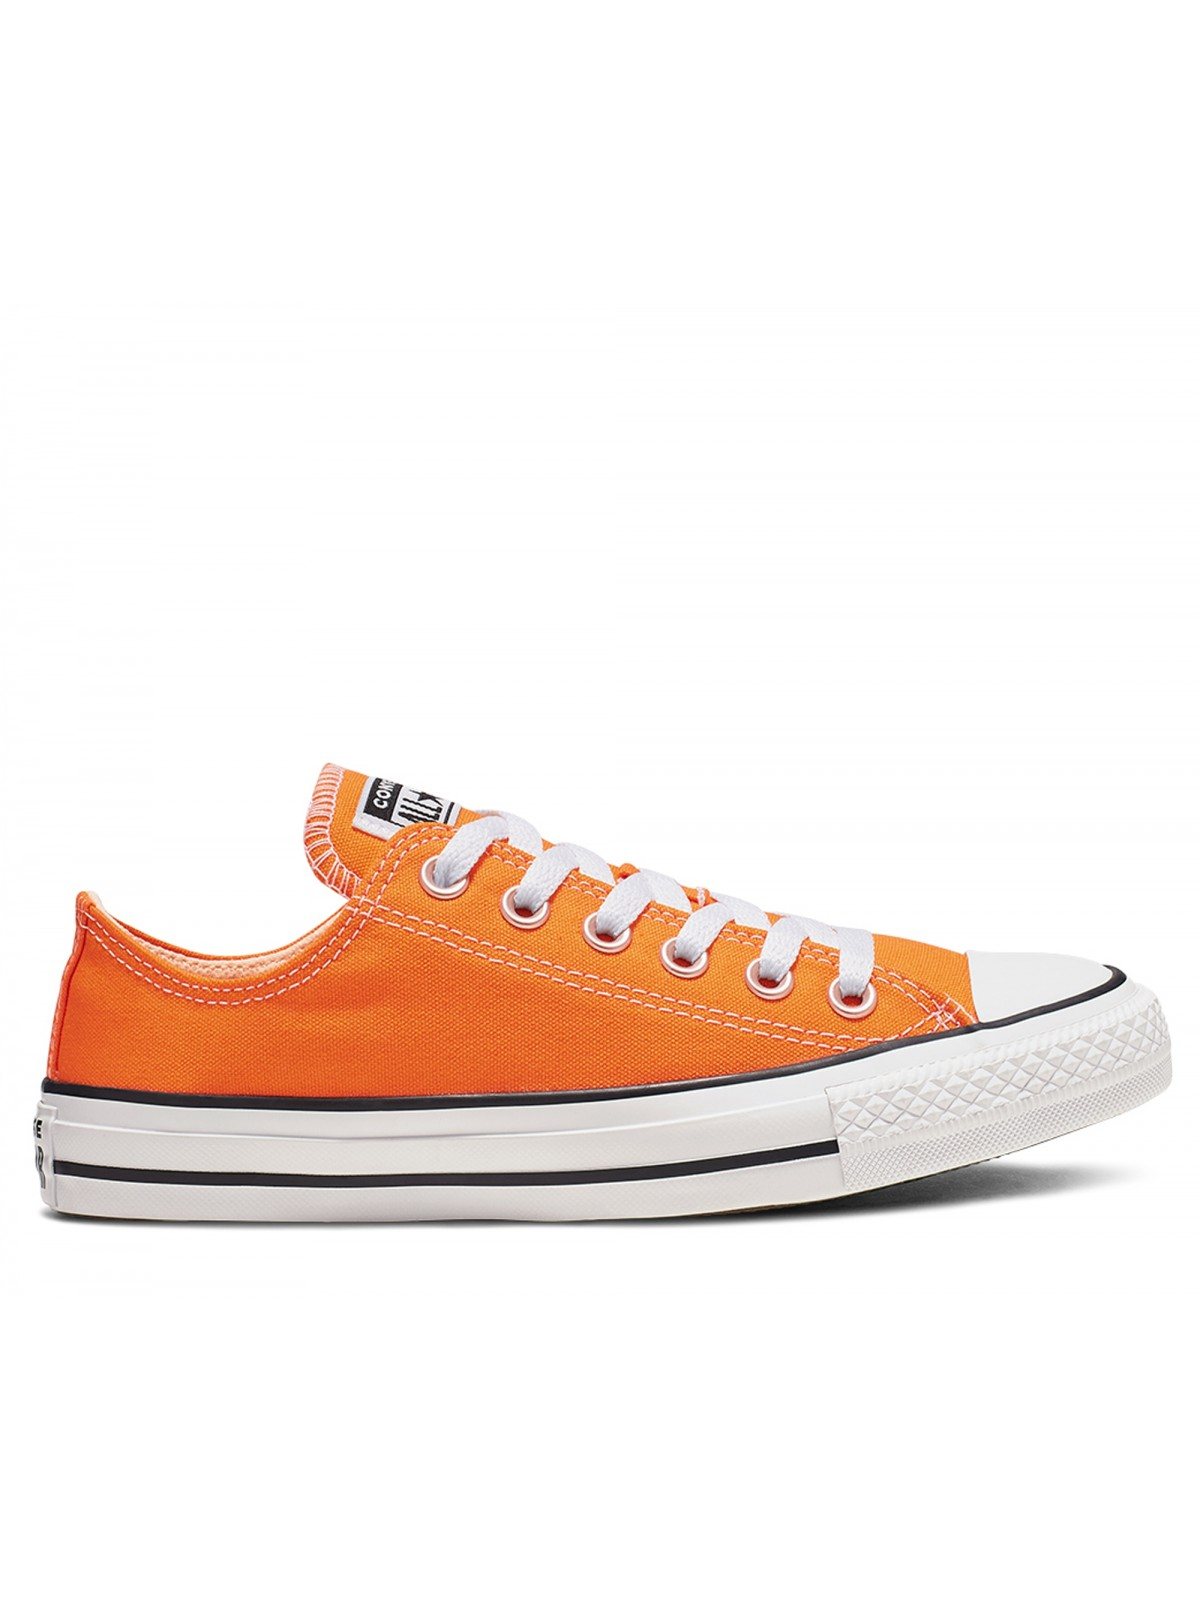 Converse Chuck Taylor all star toile basse orange / rind